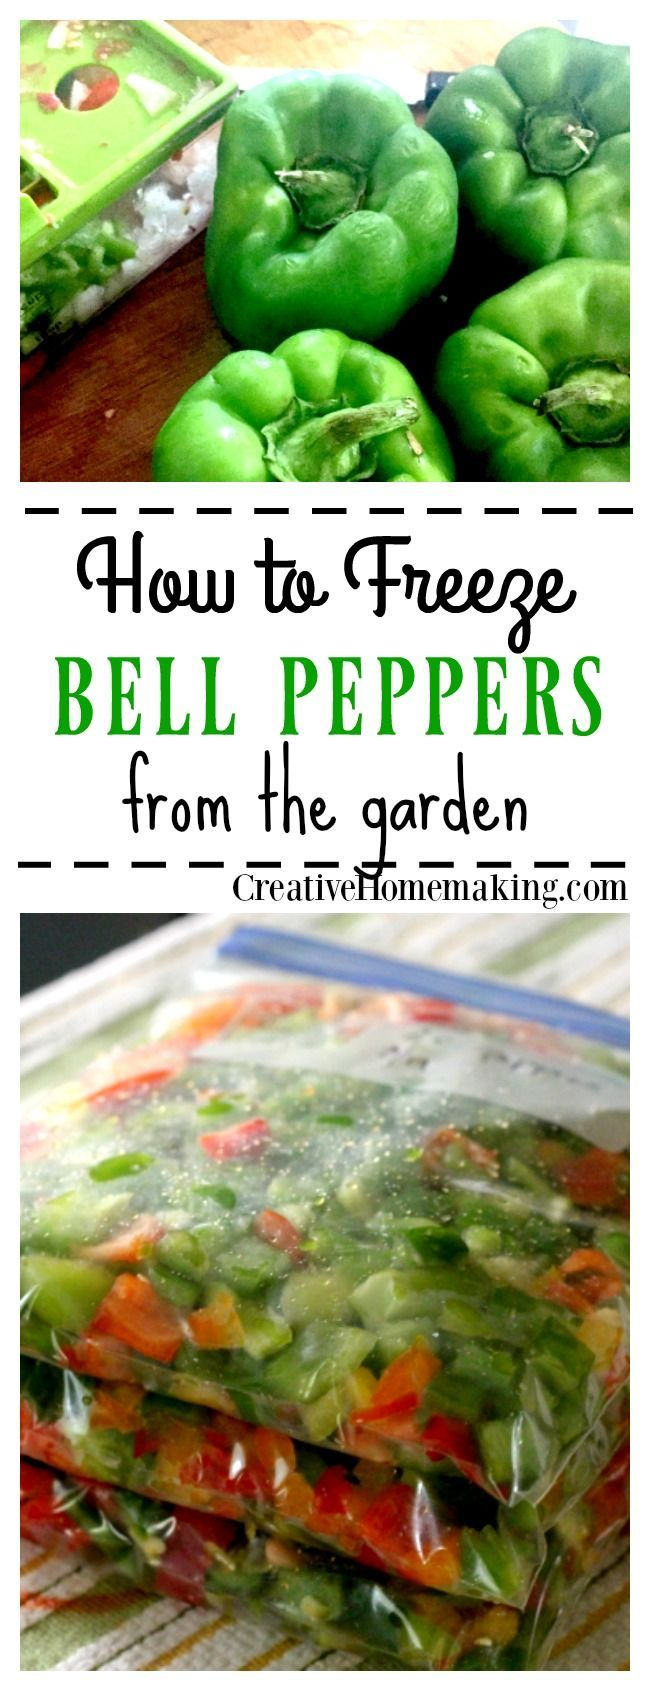 Extra peppers? Learn the easy way to freeze extra bell peppers from the garden.